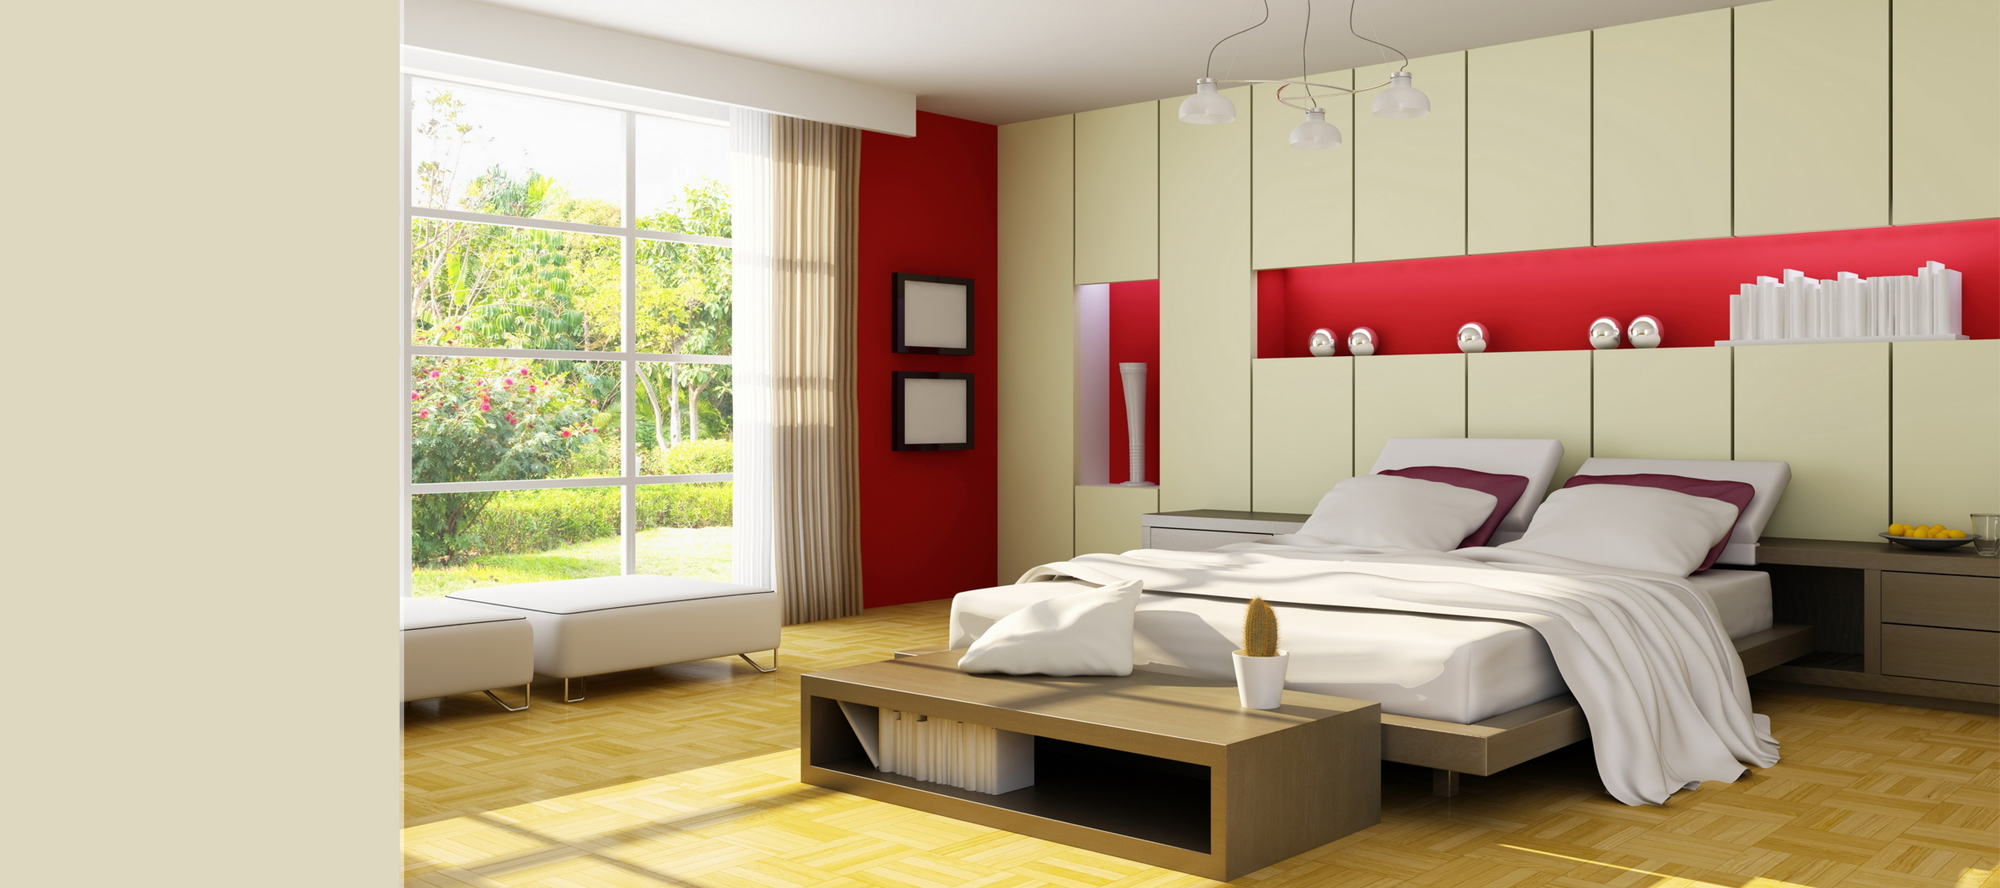 North Supreme, South Supreme Laminates For Bedroom-Sundek International